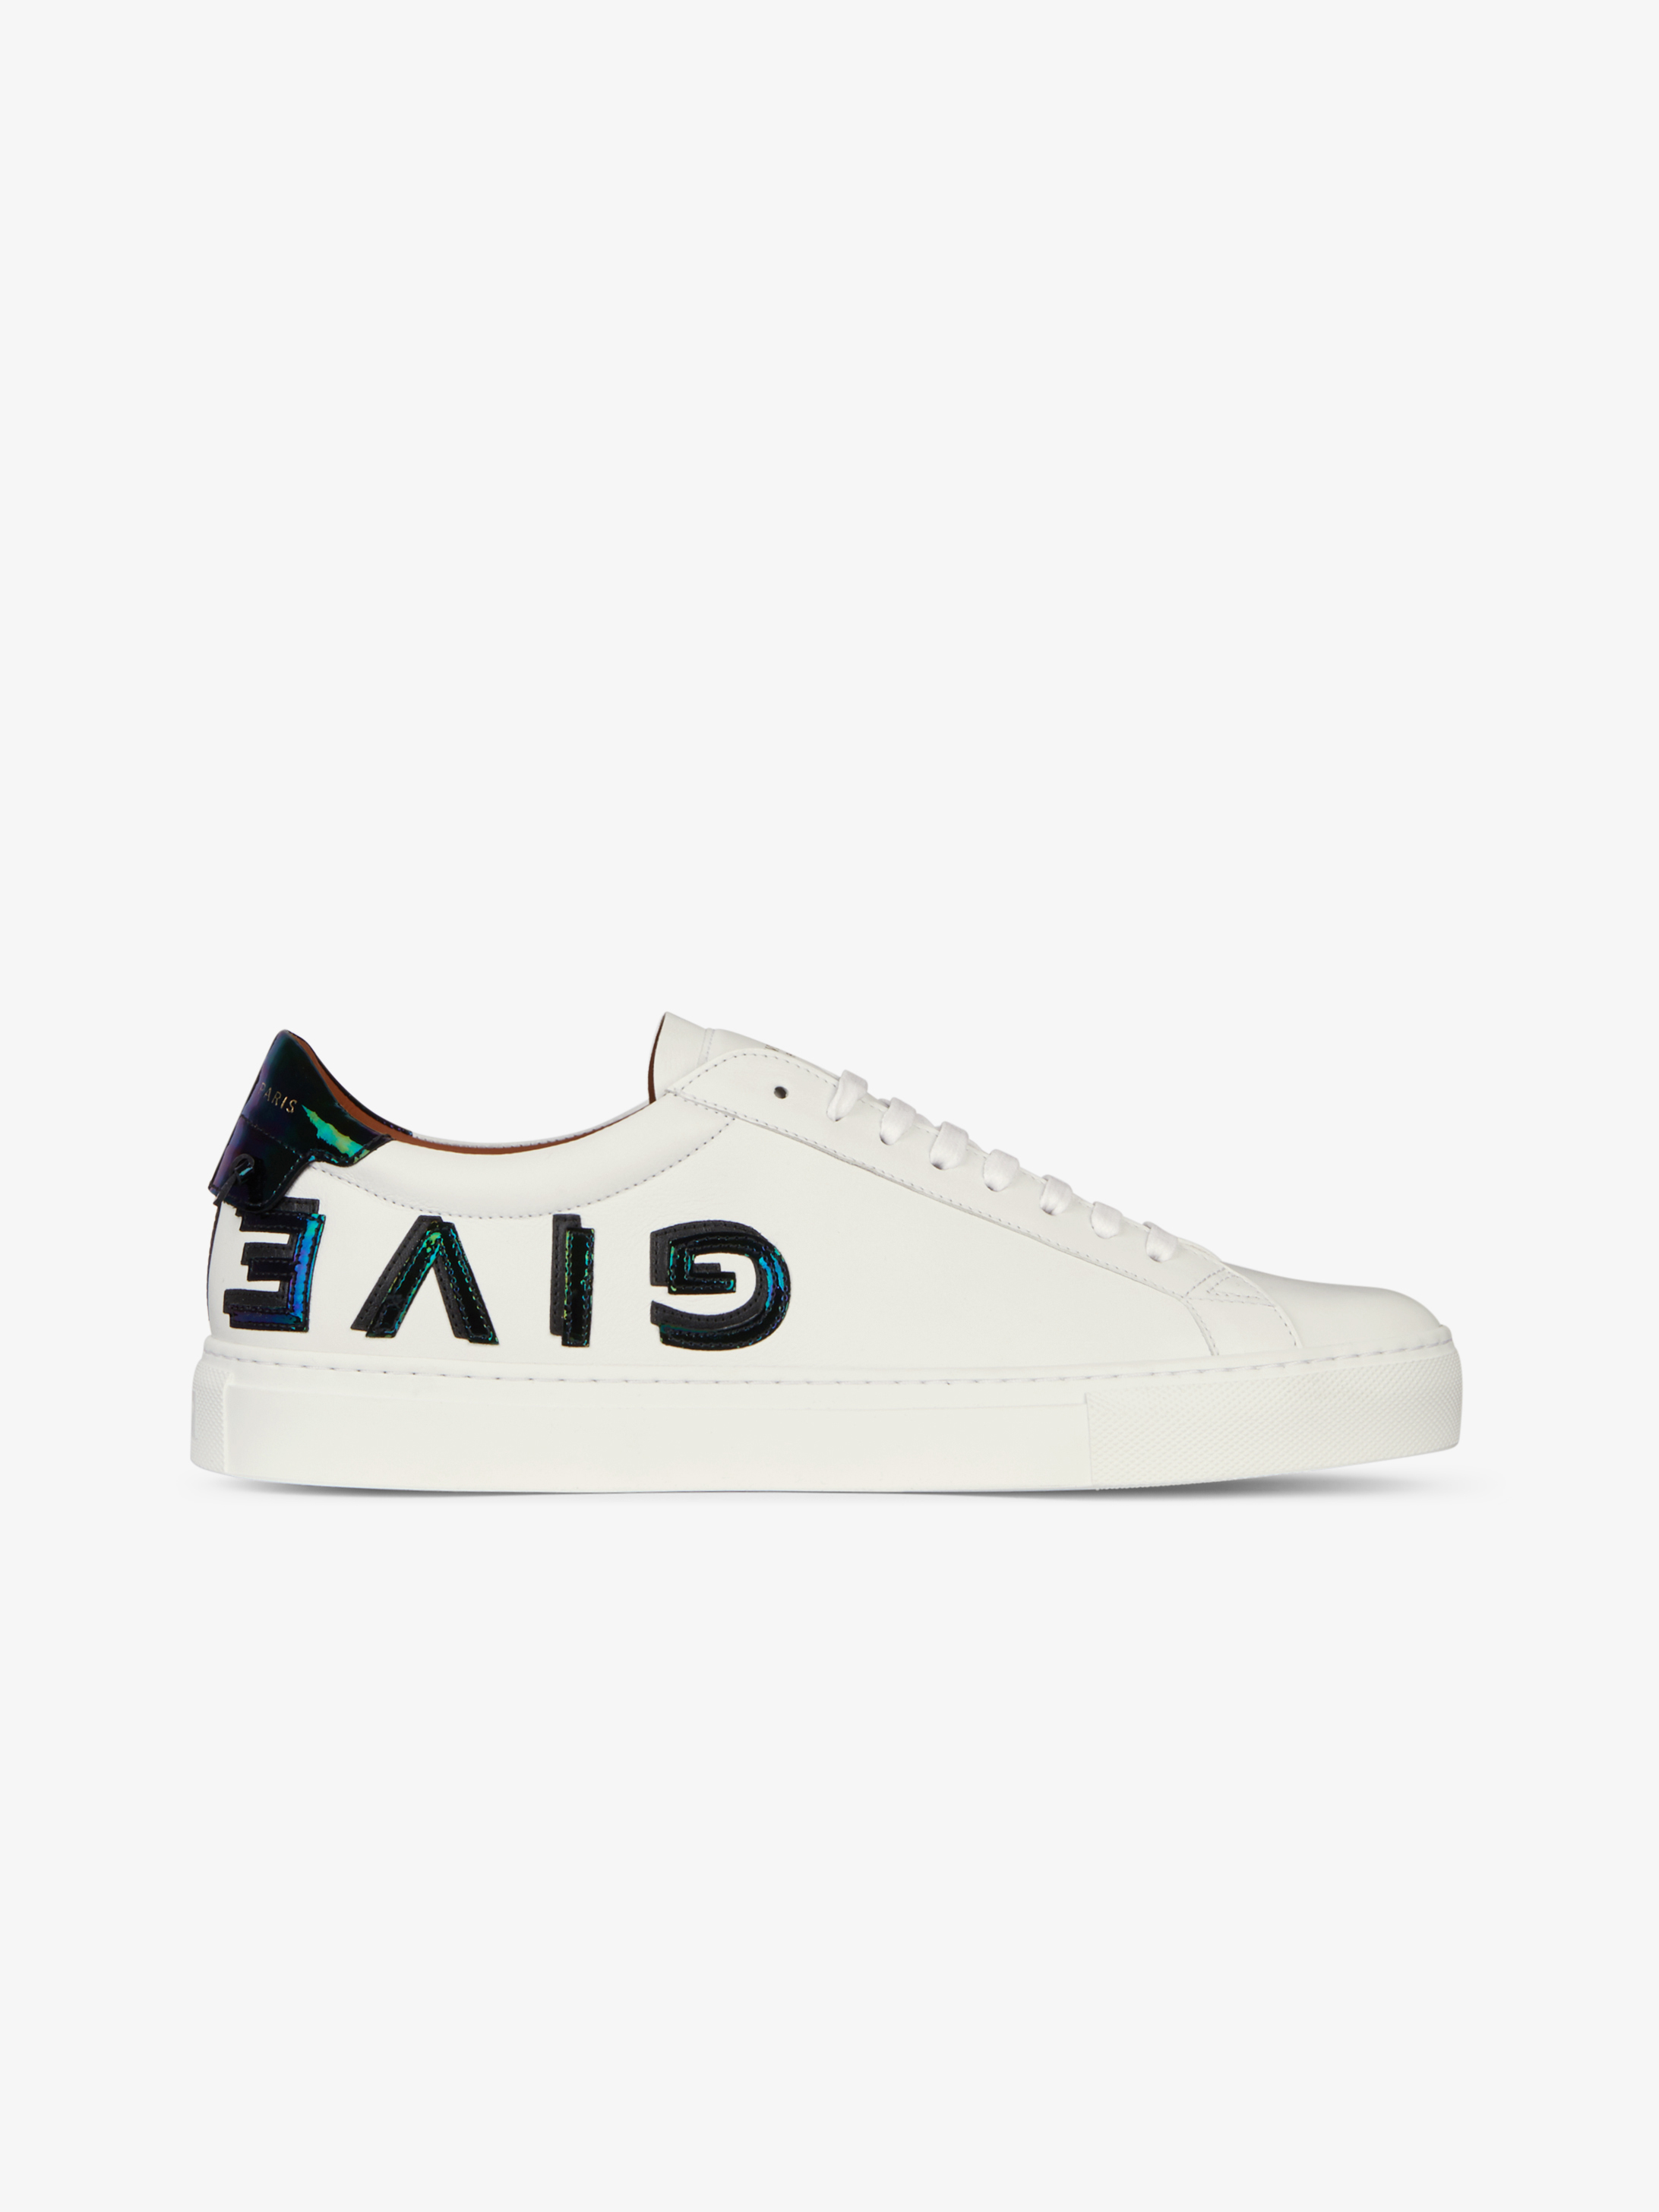 GIVENCHY reverse sneakers in leather